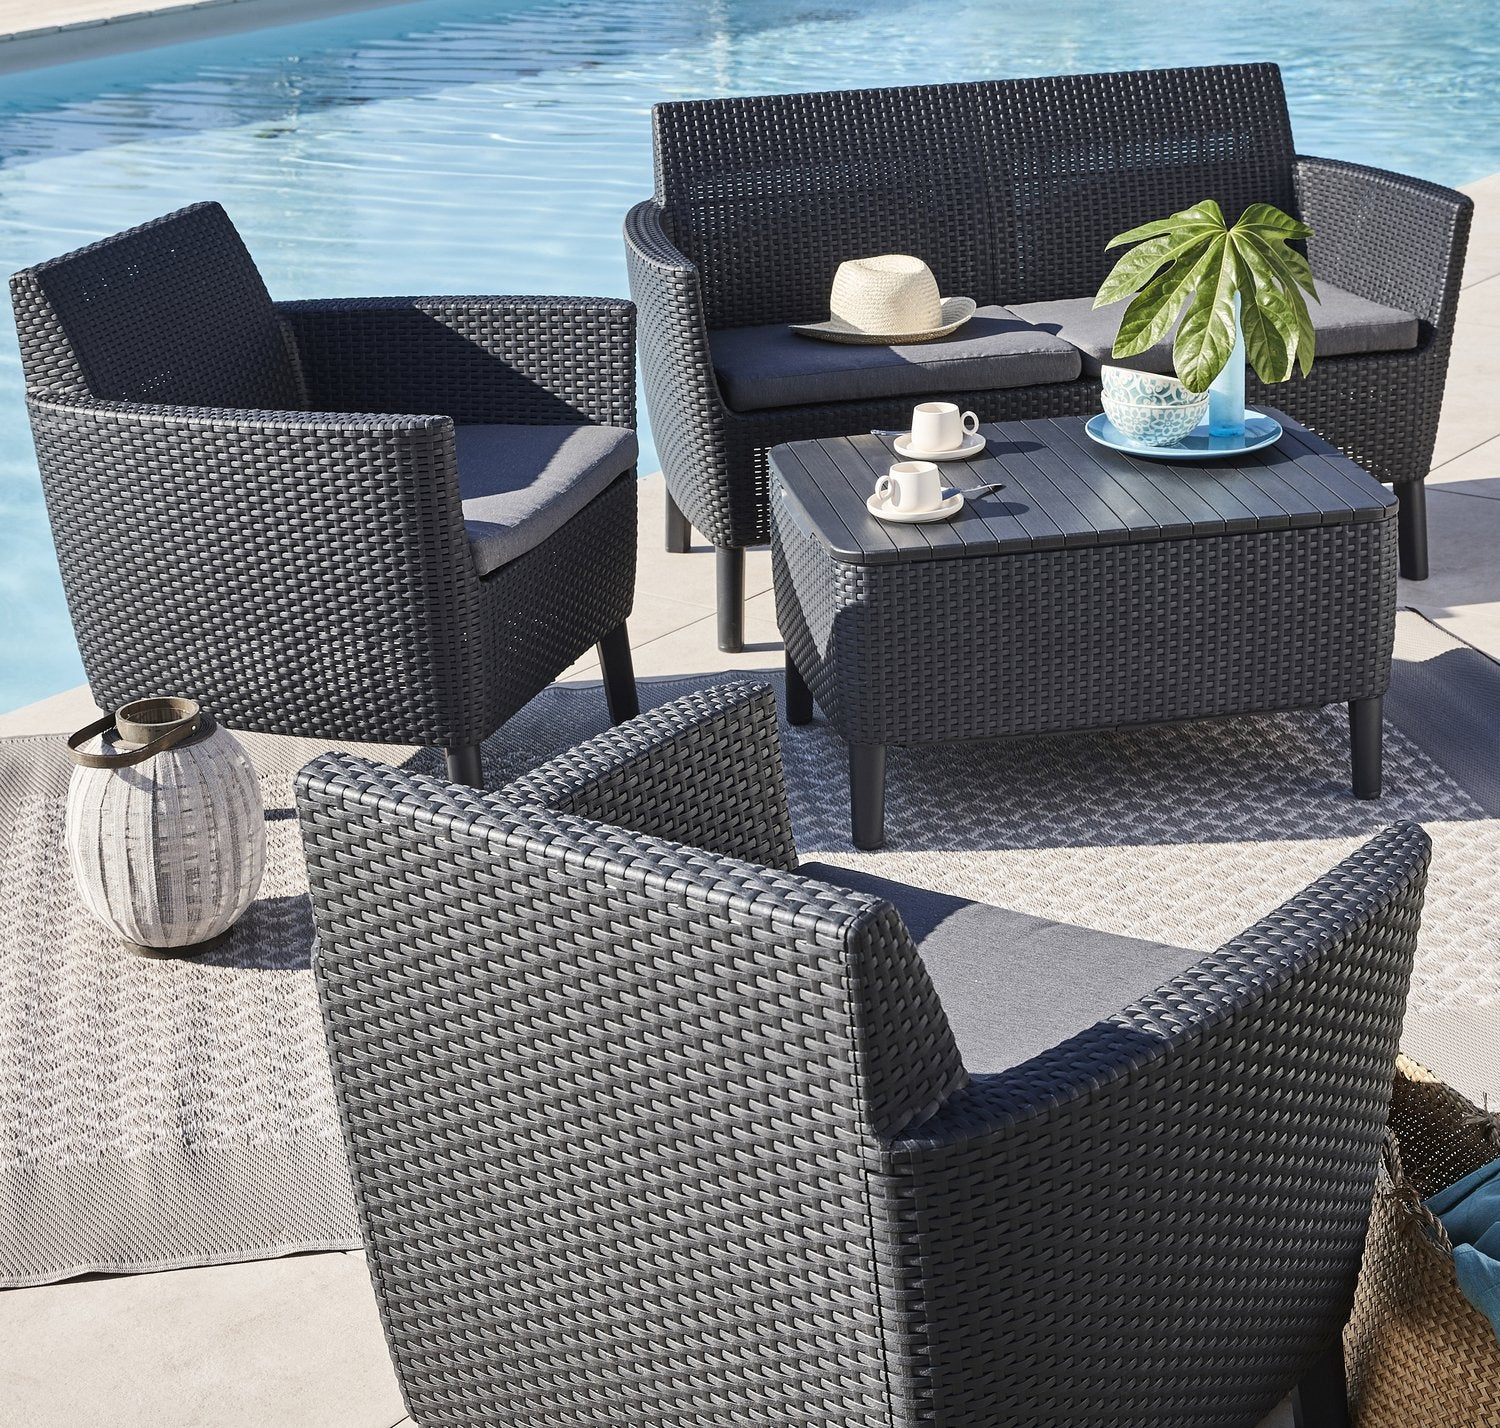 La Nouvelle Collection De Salon De Jardin 2019 | Leroy Merlin à Mobilier De Jardin Leroy Merlin